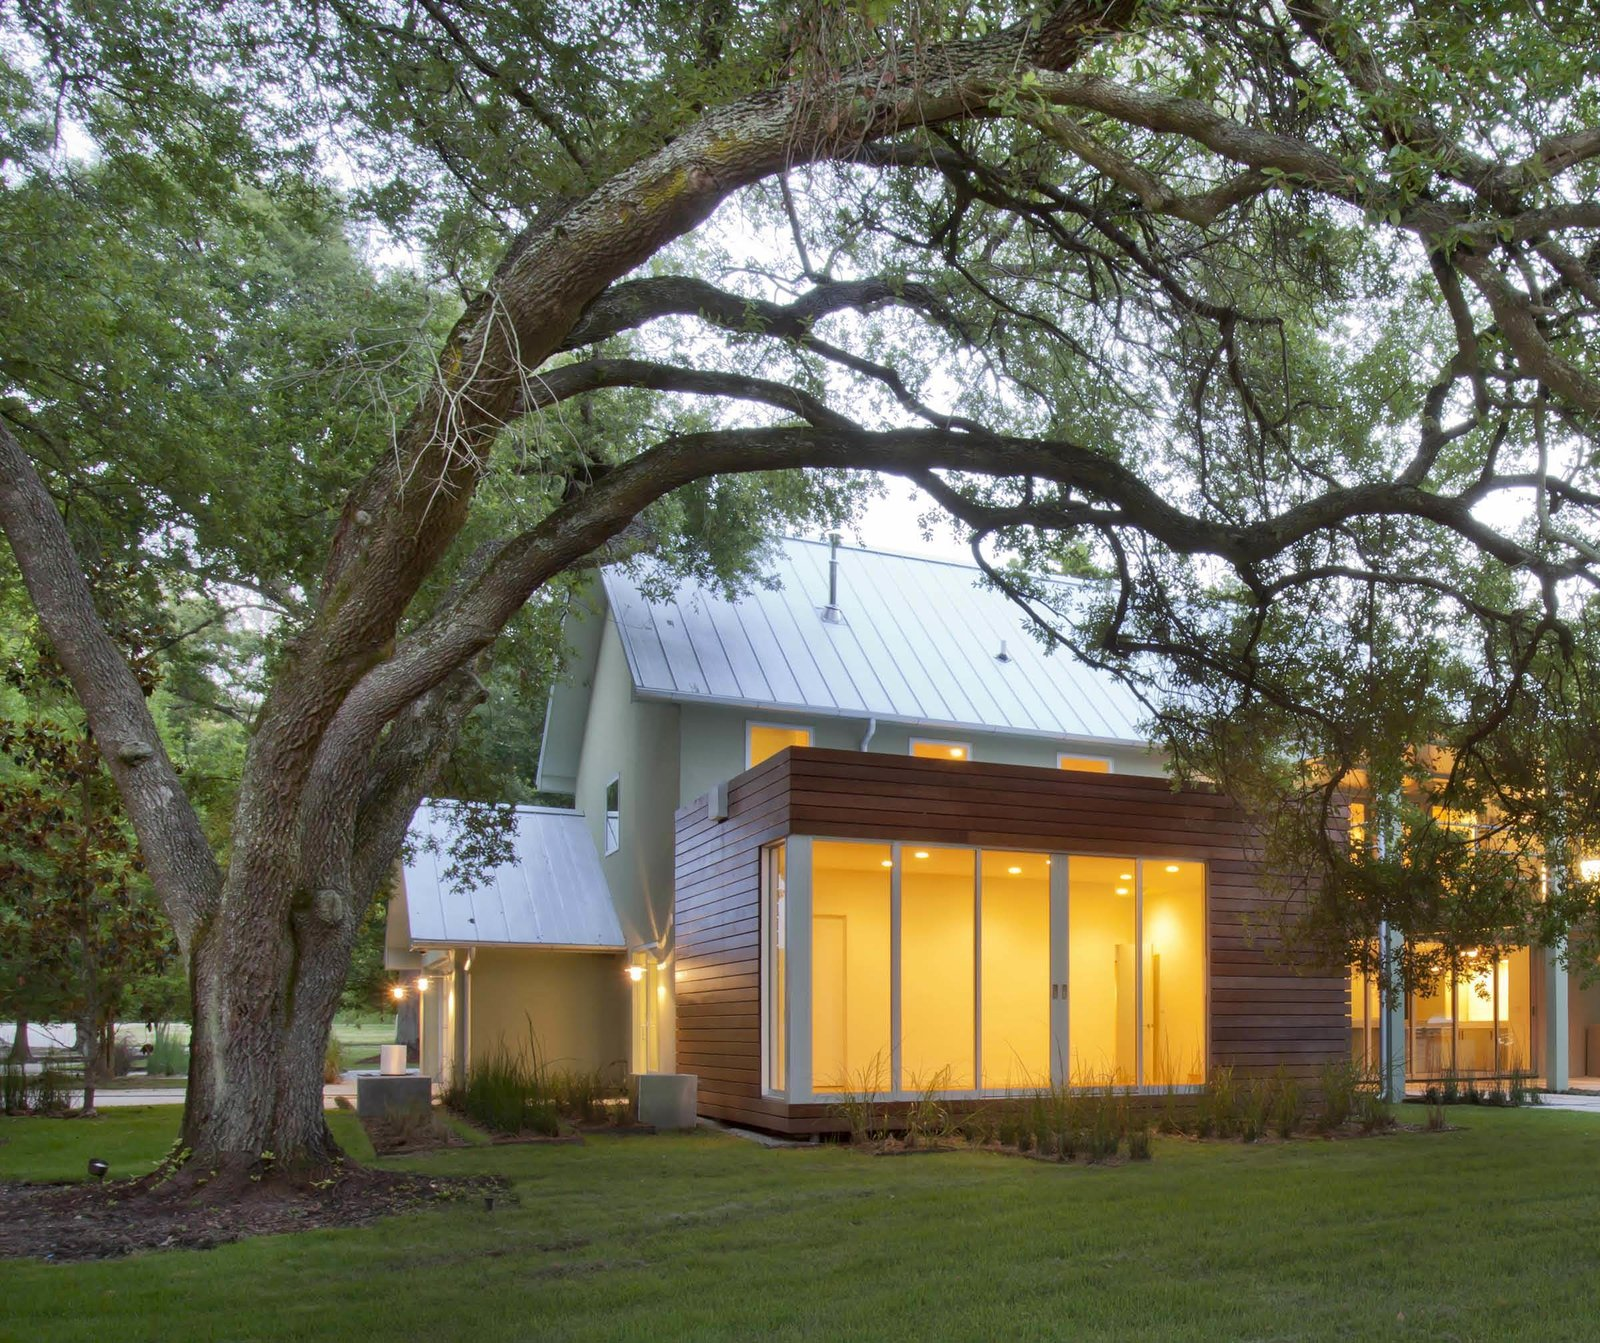 """Oak trees are a precious but delicate feature of southern landscapes: their shallow roots extend far from their bases and are vulnerable to light foot traffic and certainly building foundations. +one design & construction used a """"coil pile"""" foundation system, essentially of corkscrew-like supports, that allows the guest room to harmlessly float over the roots of this 80-year old tree.  A Renovation Reconnects a House to its Louisiana Landscape by Zachary Edelson"""